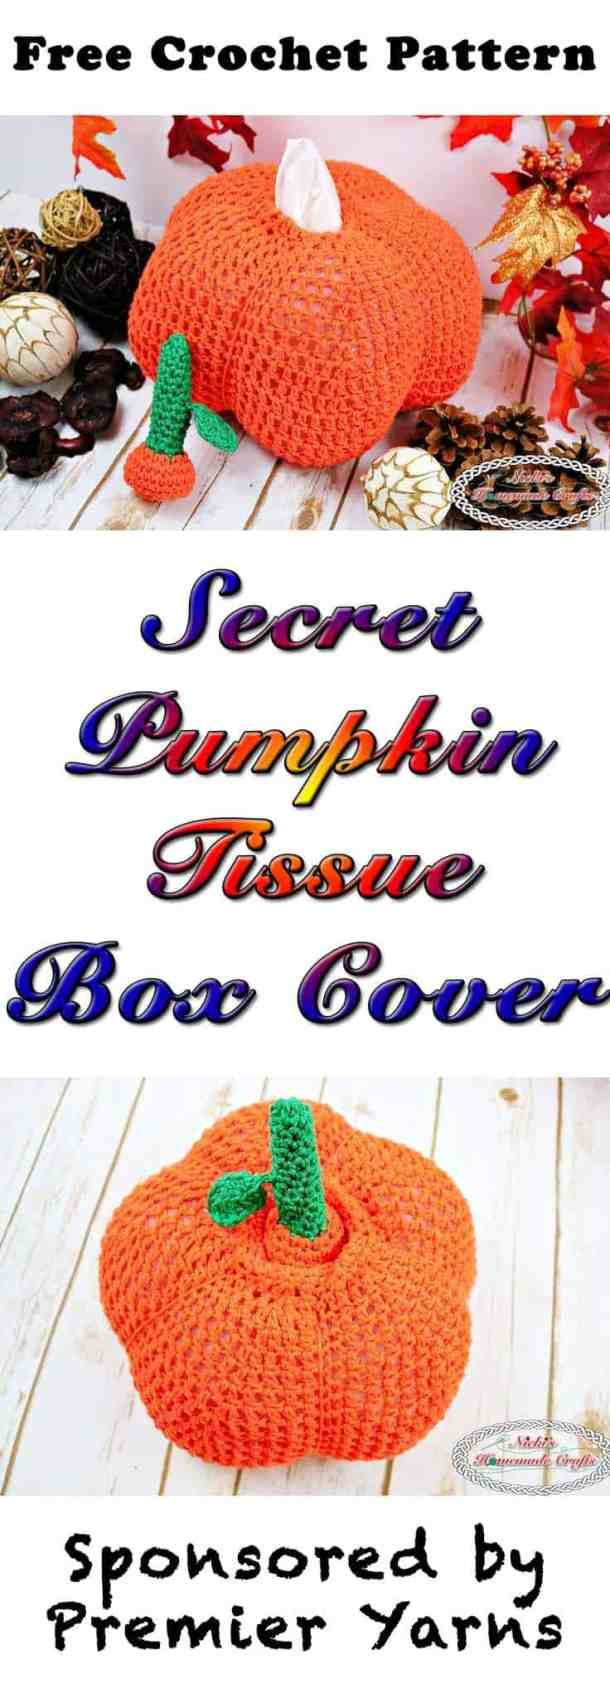 Secret Pumpkin Tissue Box Cover - Free Crochet Pattern - Nicki\'s ...